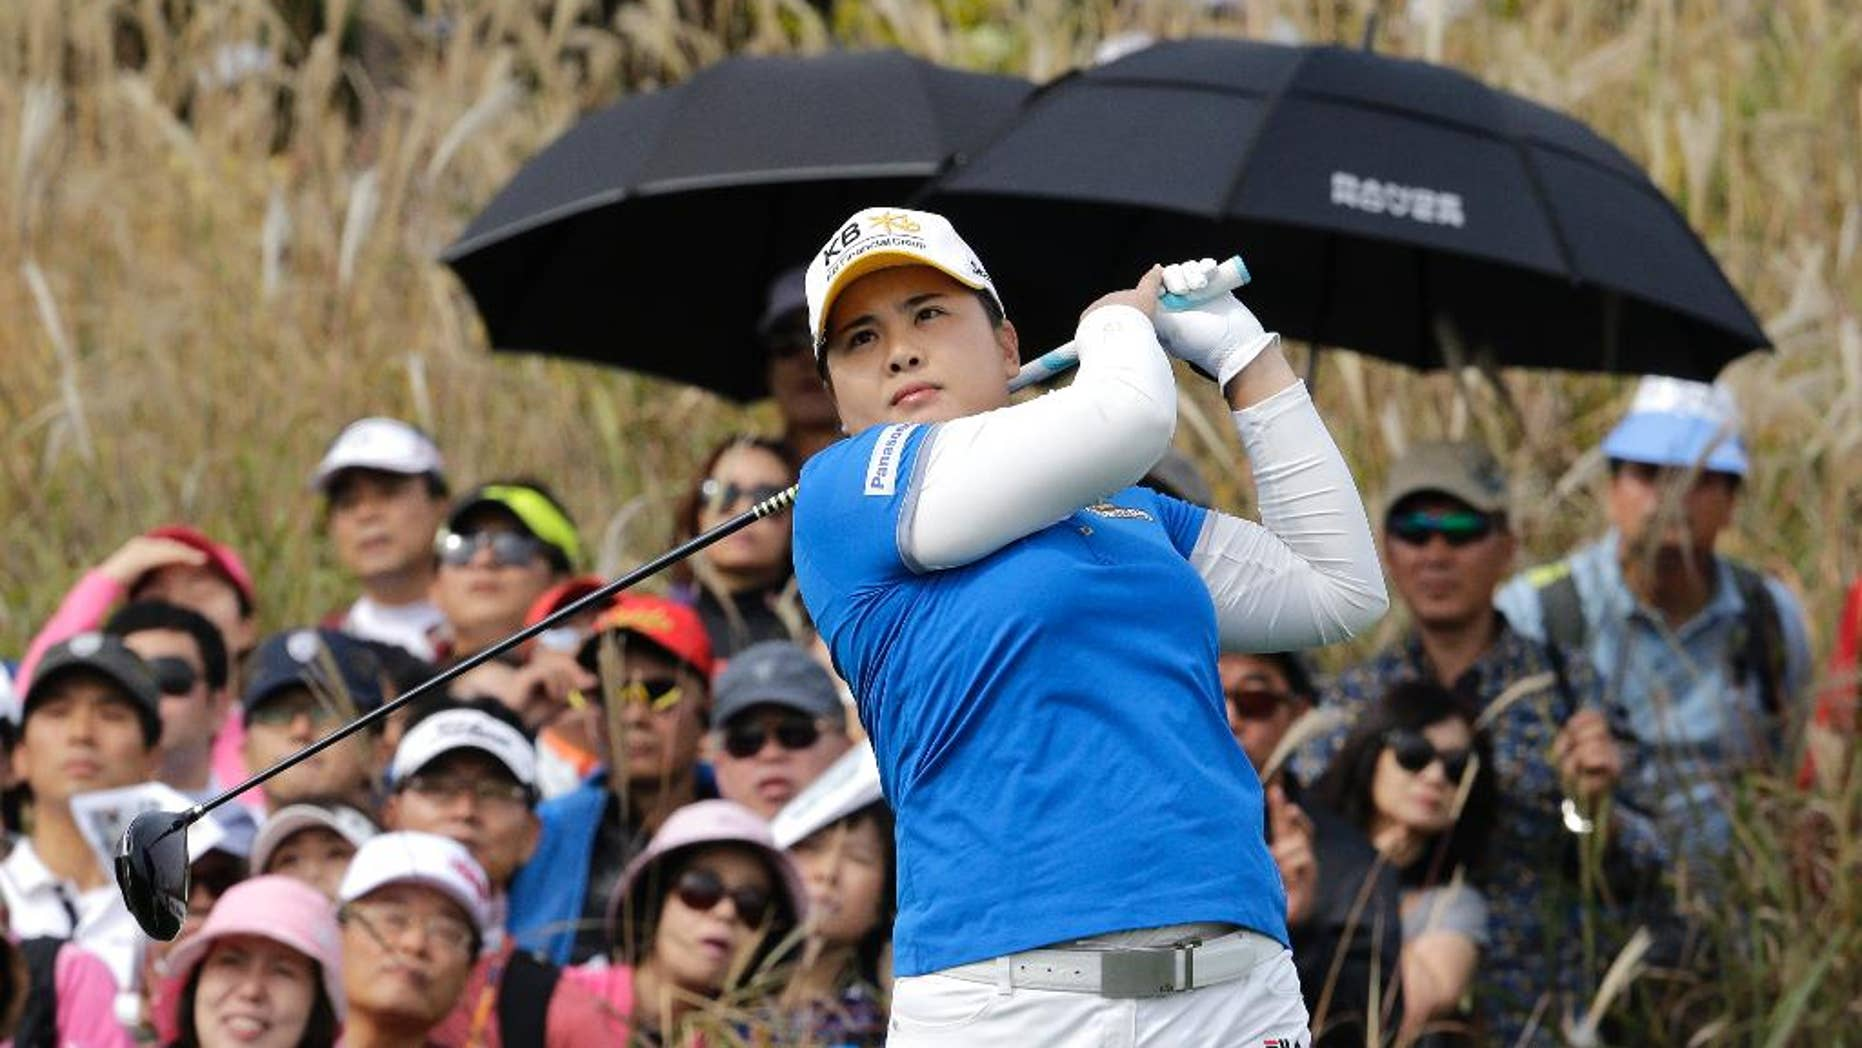 Inbee Park of South Korea watches her shot on the 9th hole during the final round of the KEB Hana Bank Championship golf tournament at Sky72 Golf Club in Incheon, South Korea, Sunday, Oct. 19, 2014.(AP Photo/Ahn Young-joon)